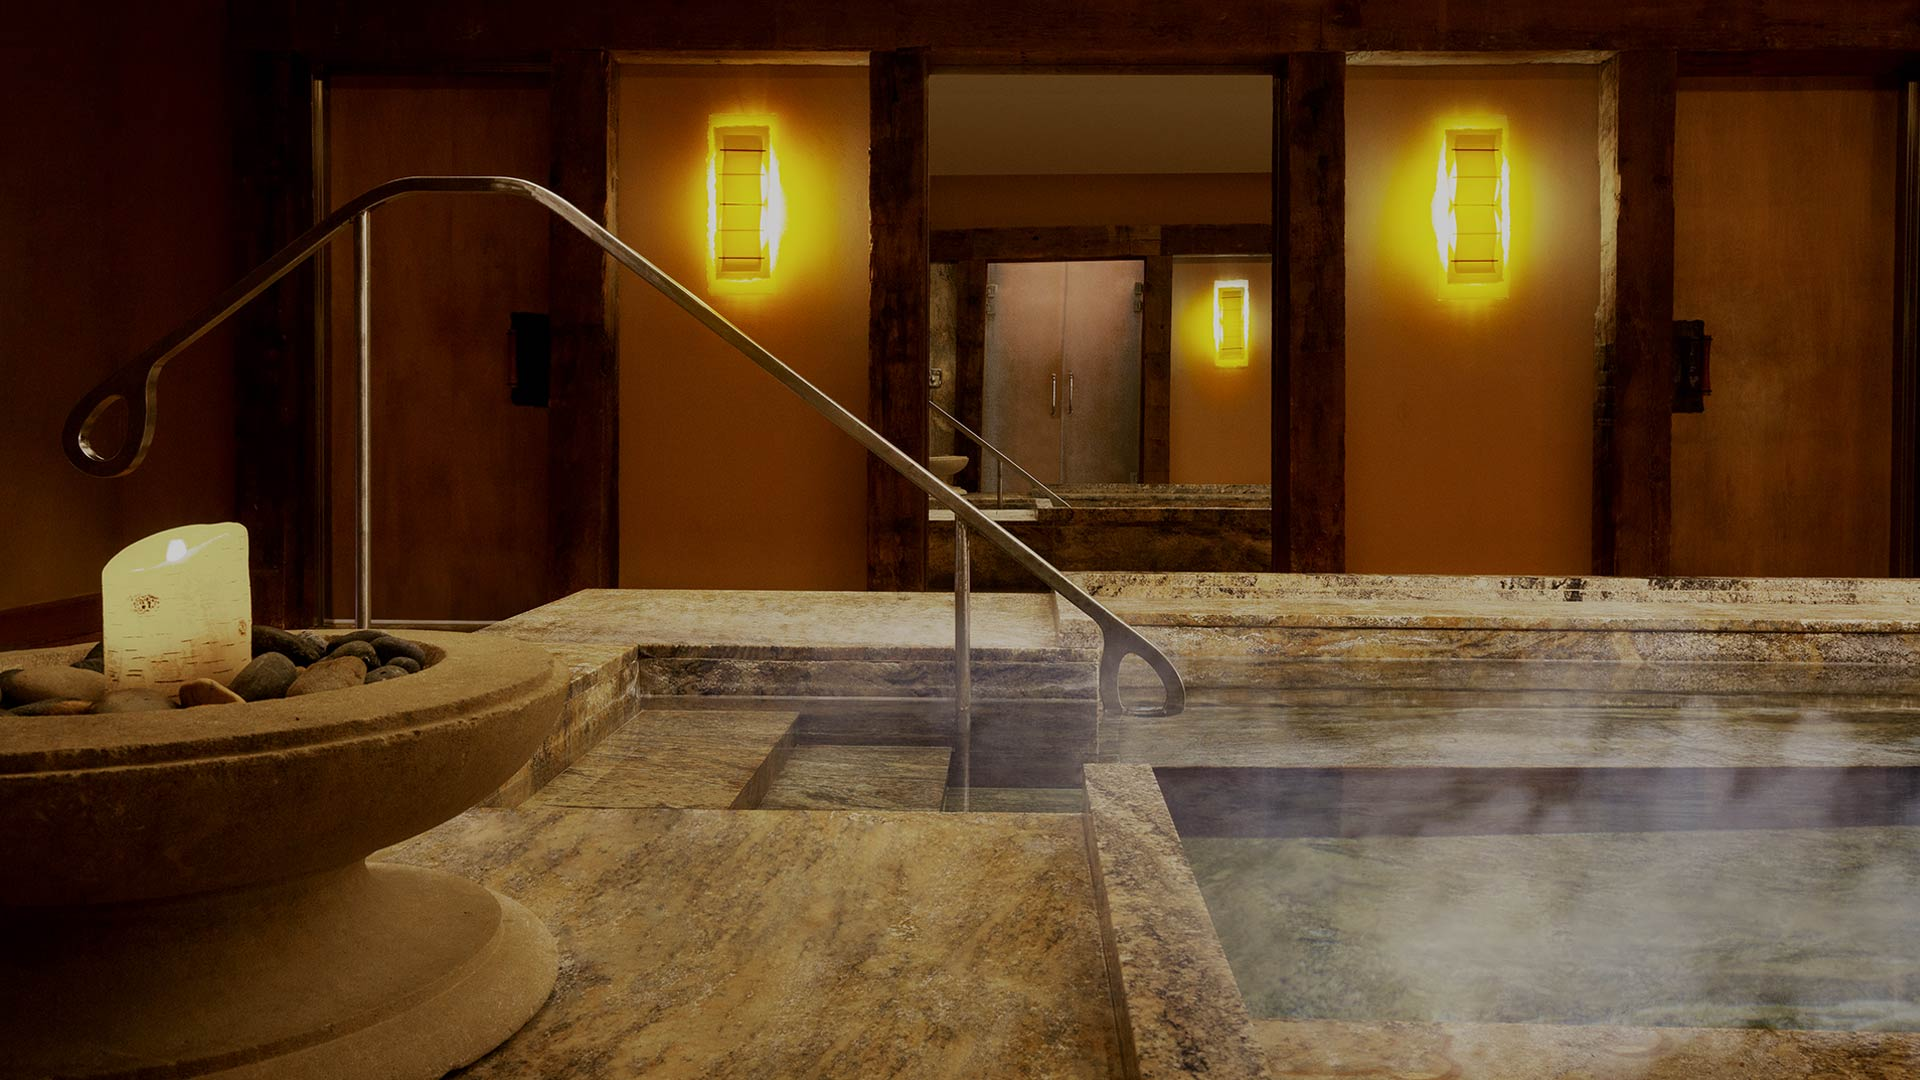 interior shot of a spa hot tub. there is soft lighting, lit candles and steam rising from the hot tub